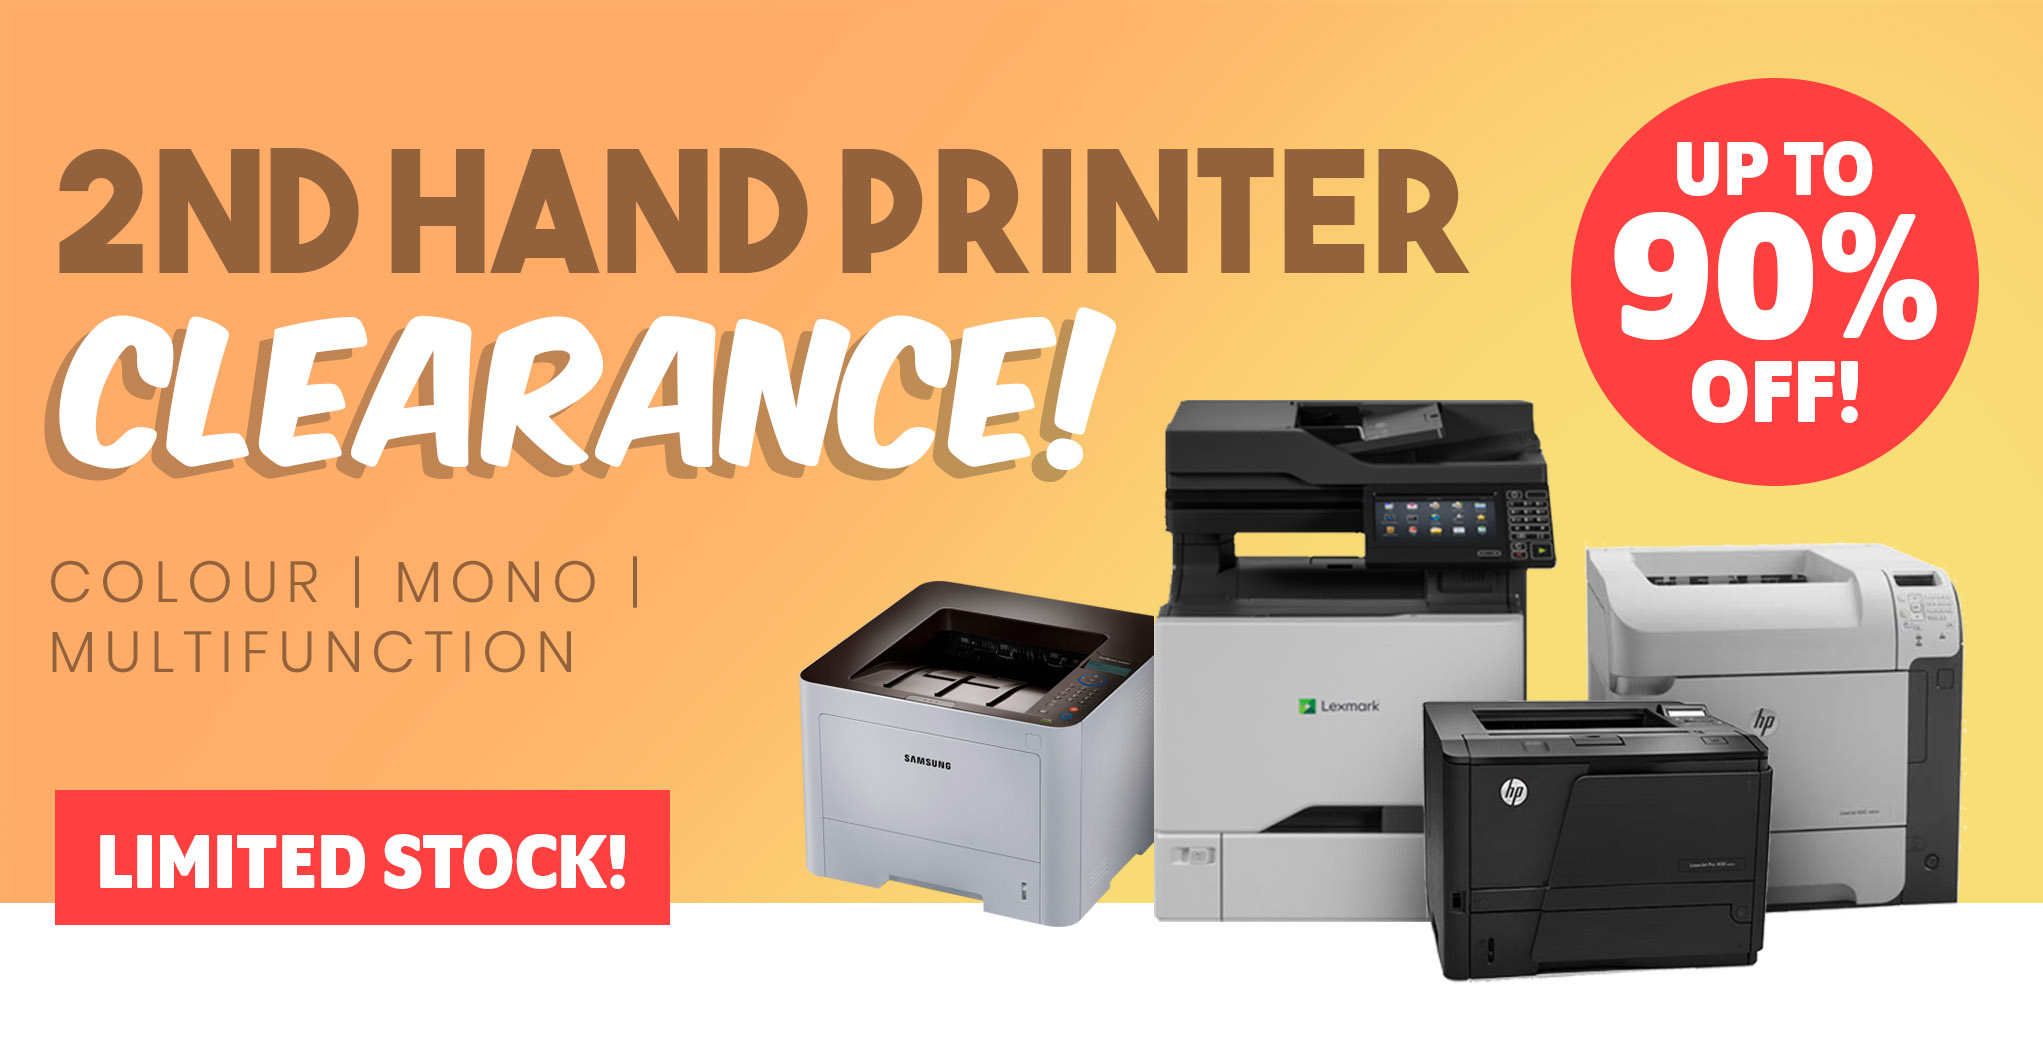 Second Hand Printer Clearance